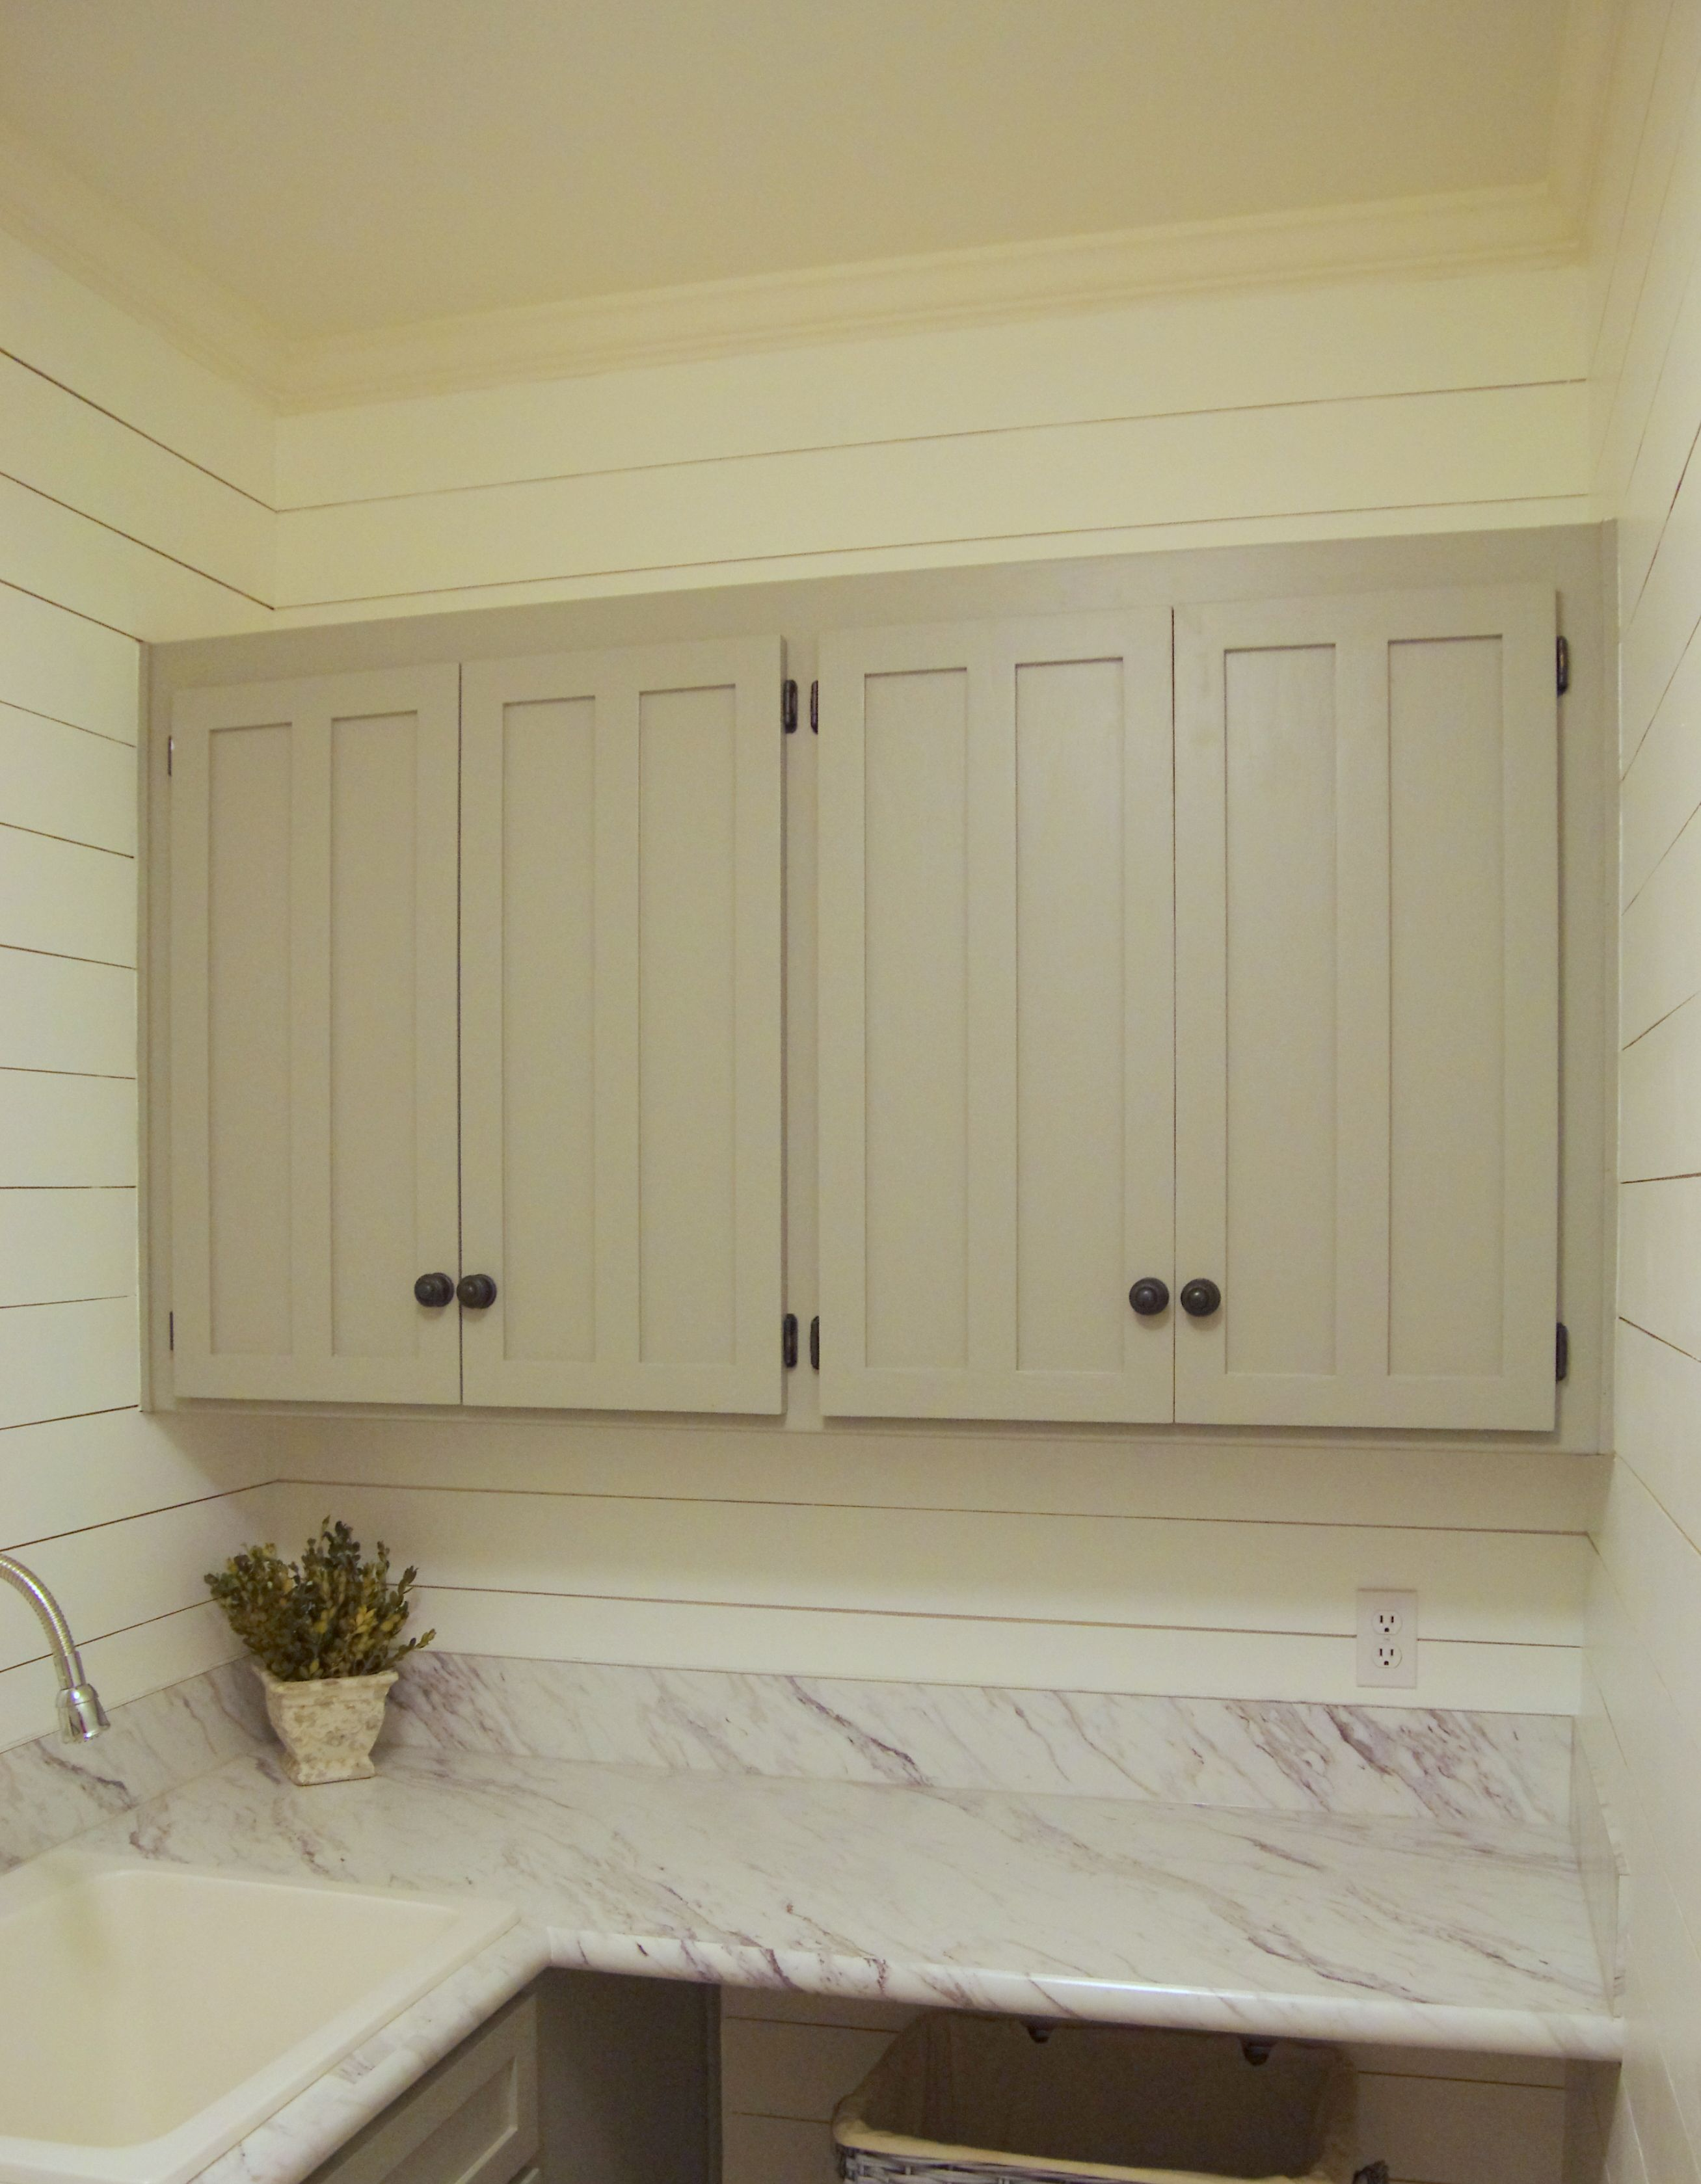 Calcutta Marble Laminate Countertop Farmhouse Laundry Room Wilsonart Calcutta Marble Laminate